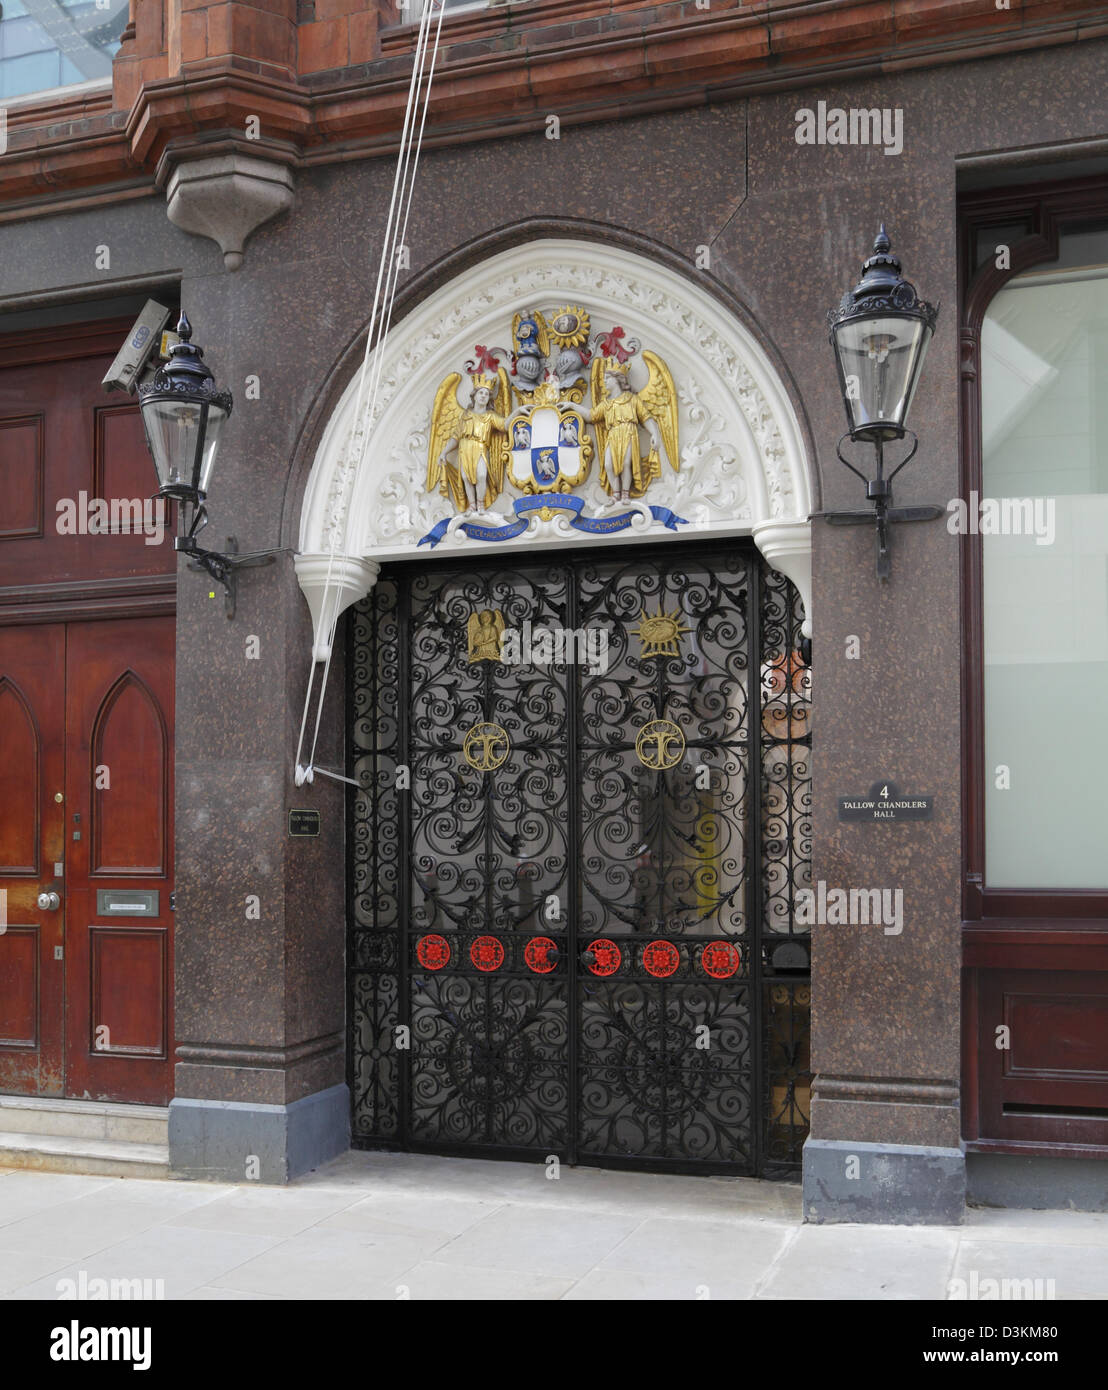 Ornate gates of the Tallow Chandlers Hall, Dowgate Hill, City of London, England, UK, GB - Stock Image